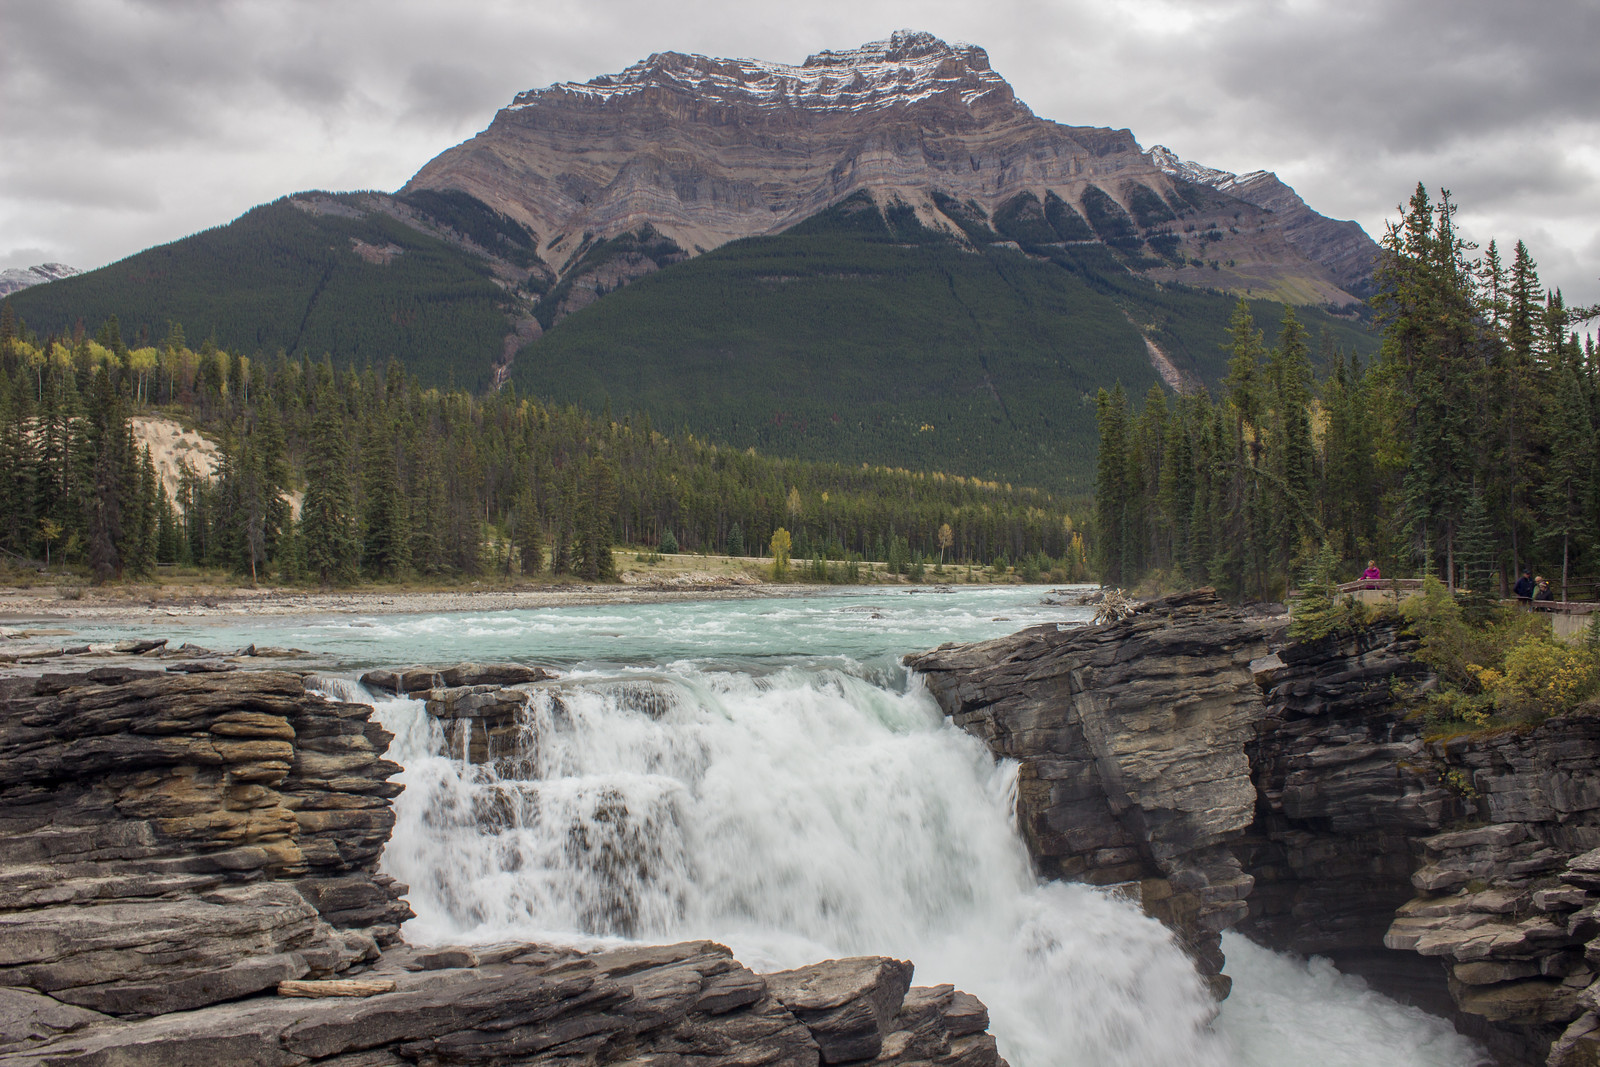 Athabasca Falls, just outside Jasper on the Icefields Parkway